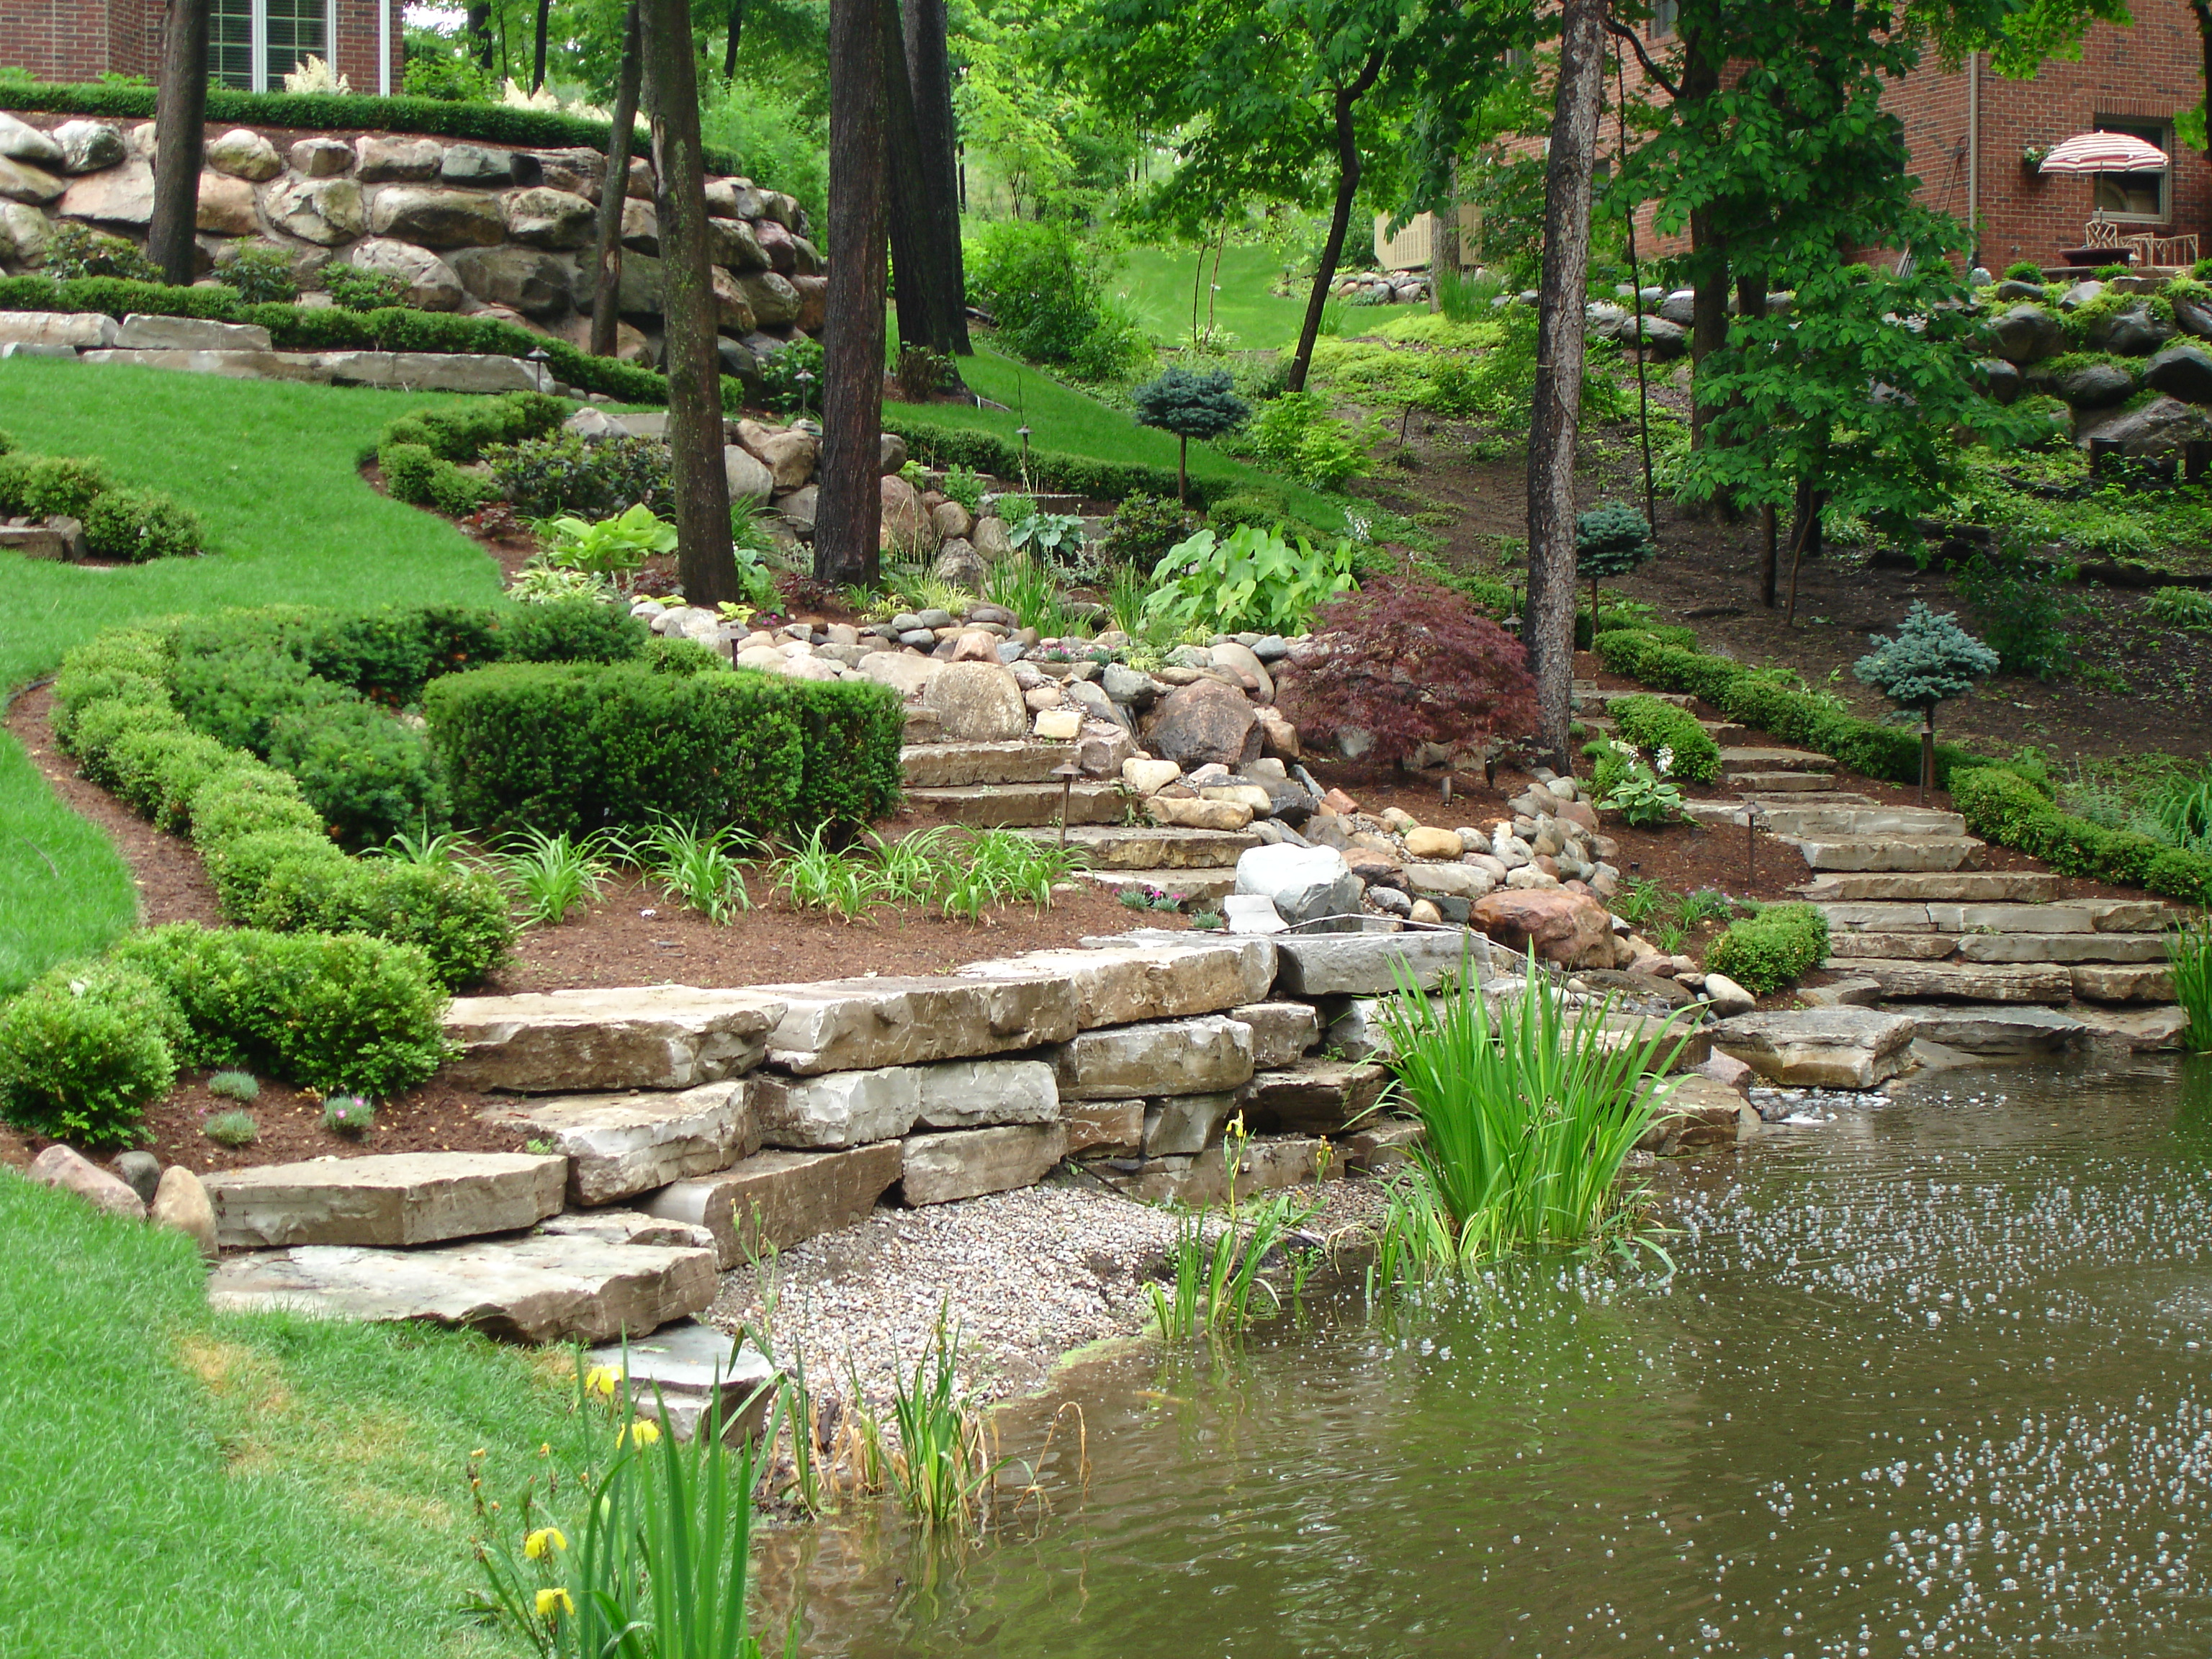 Beatiful Garden With Rocks Stairs And Sloping Design